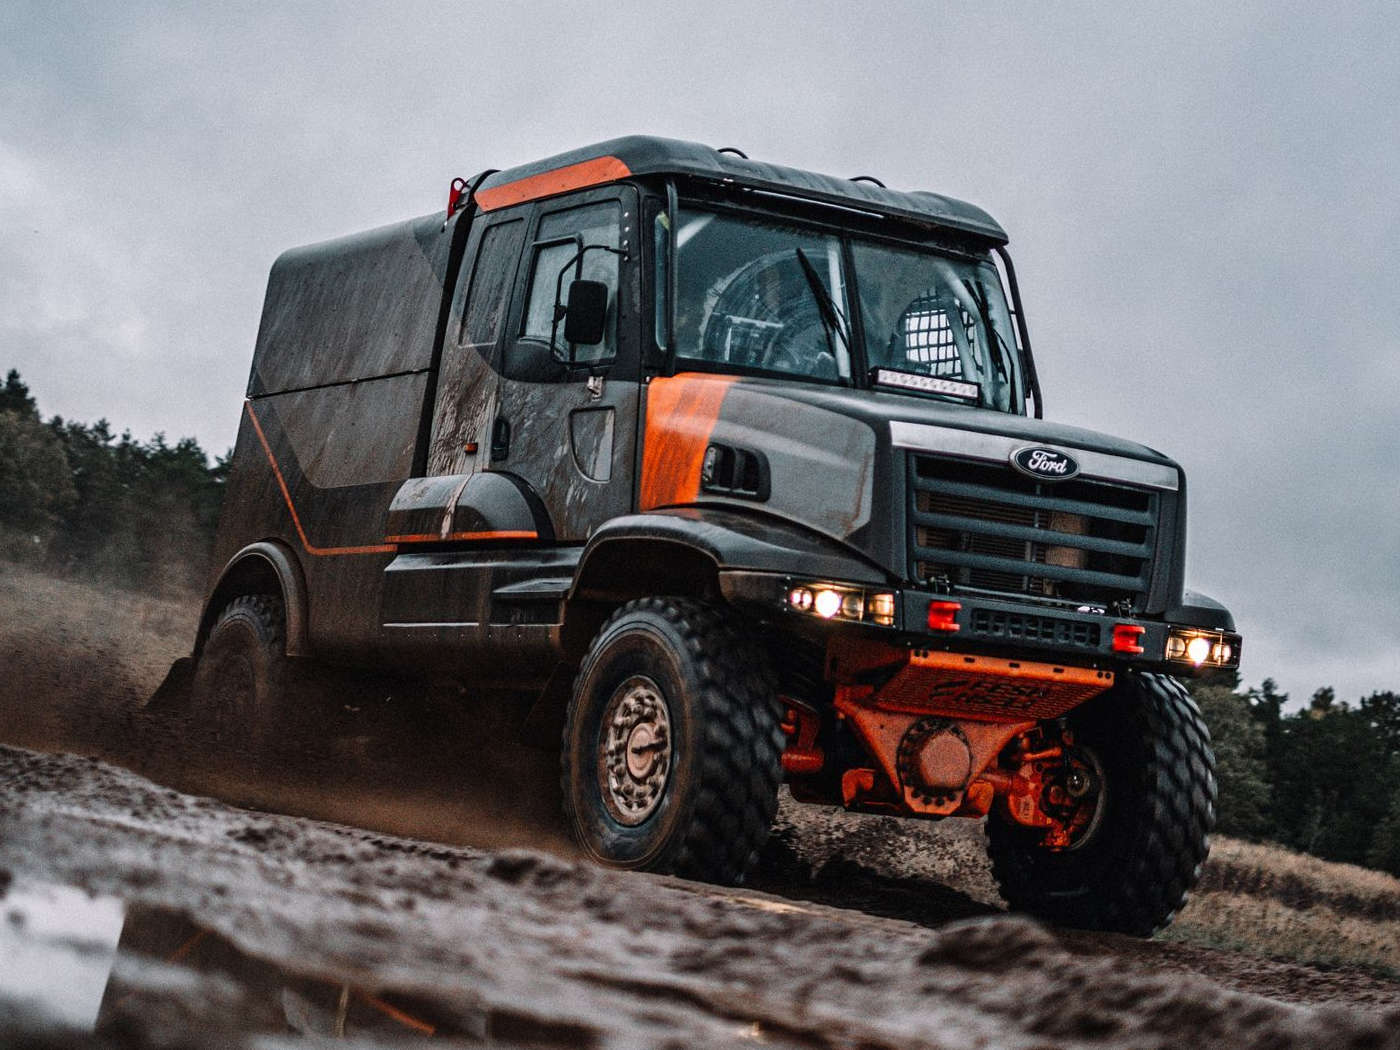 FESH FESH Dakar New Truck - design by WERKEMOTION